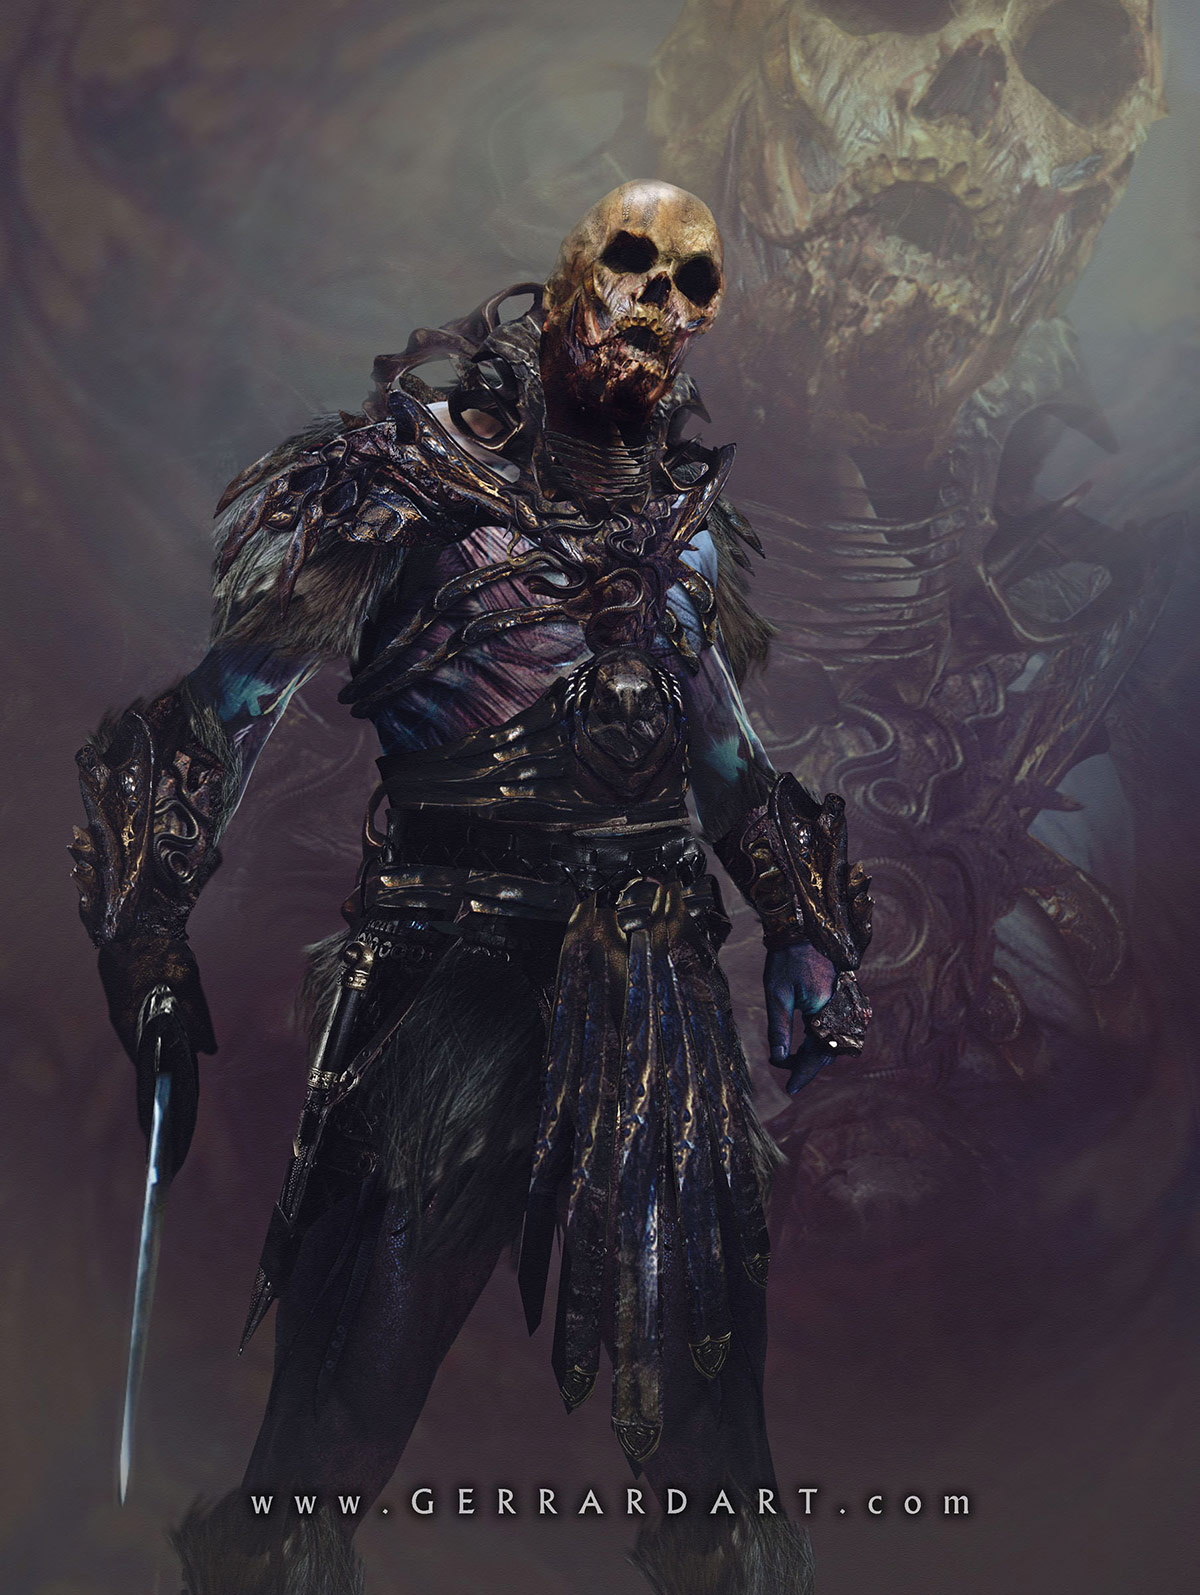 masters of the universe reimagining art by paul gerrard